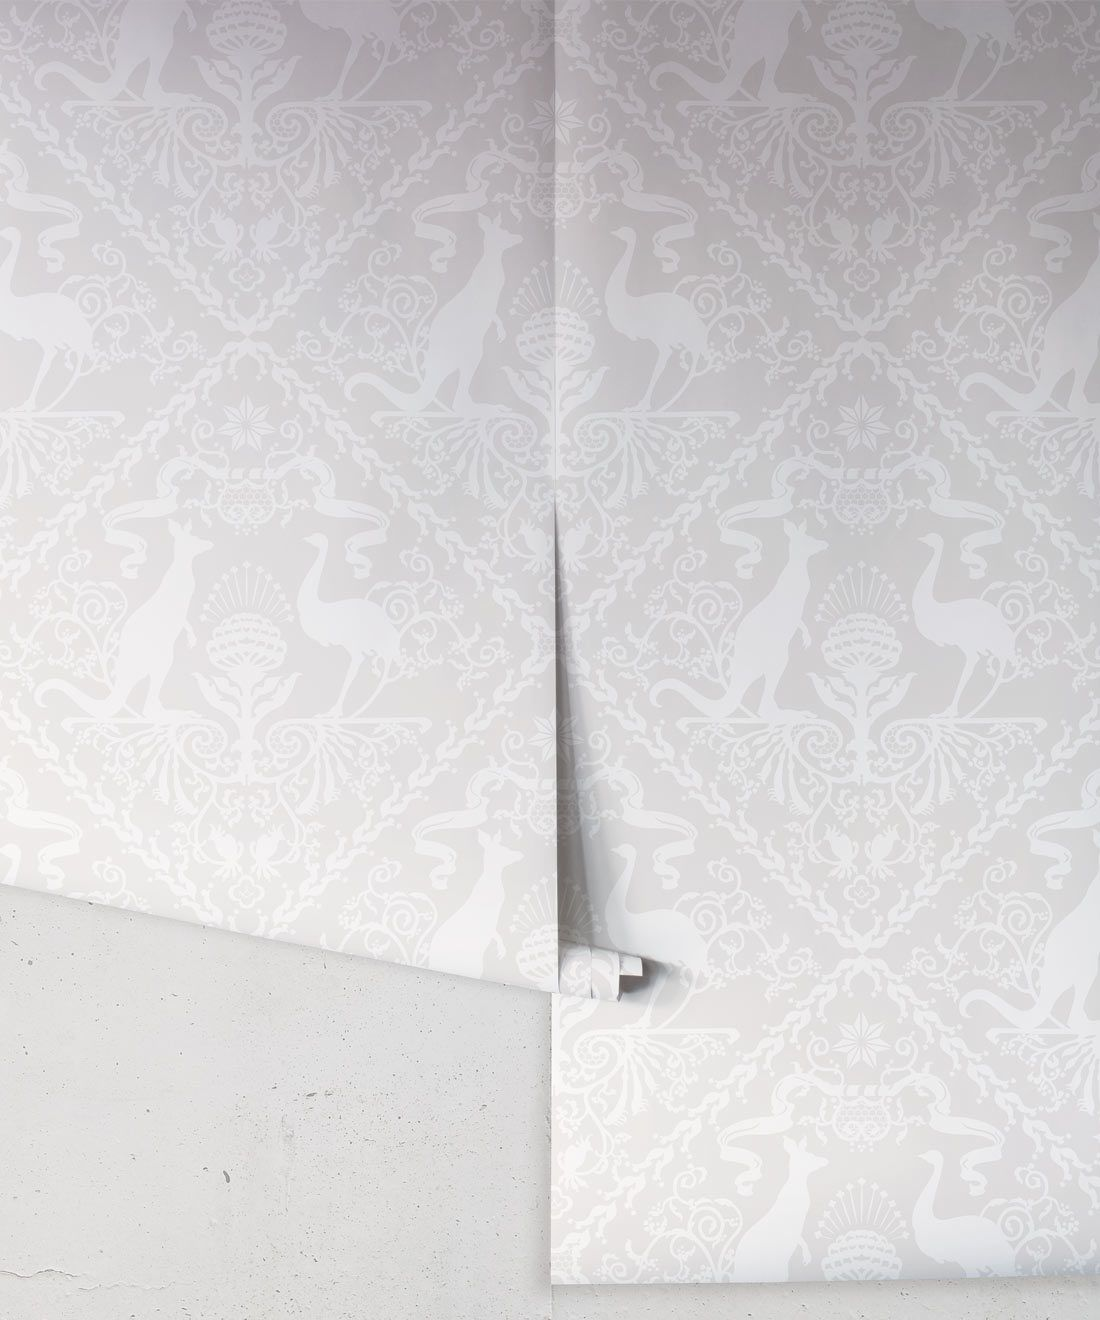 In Australia We Trust Bondi • Australian Wallpaper • Australian Coat of Arms • Milton & King USA • Grey Wallpaper Rolls